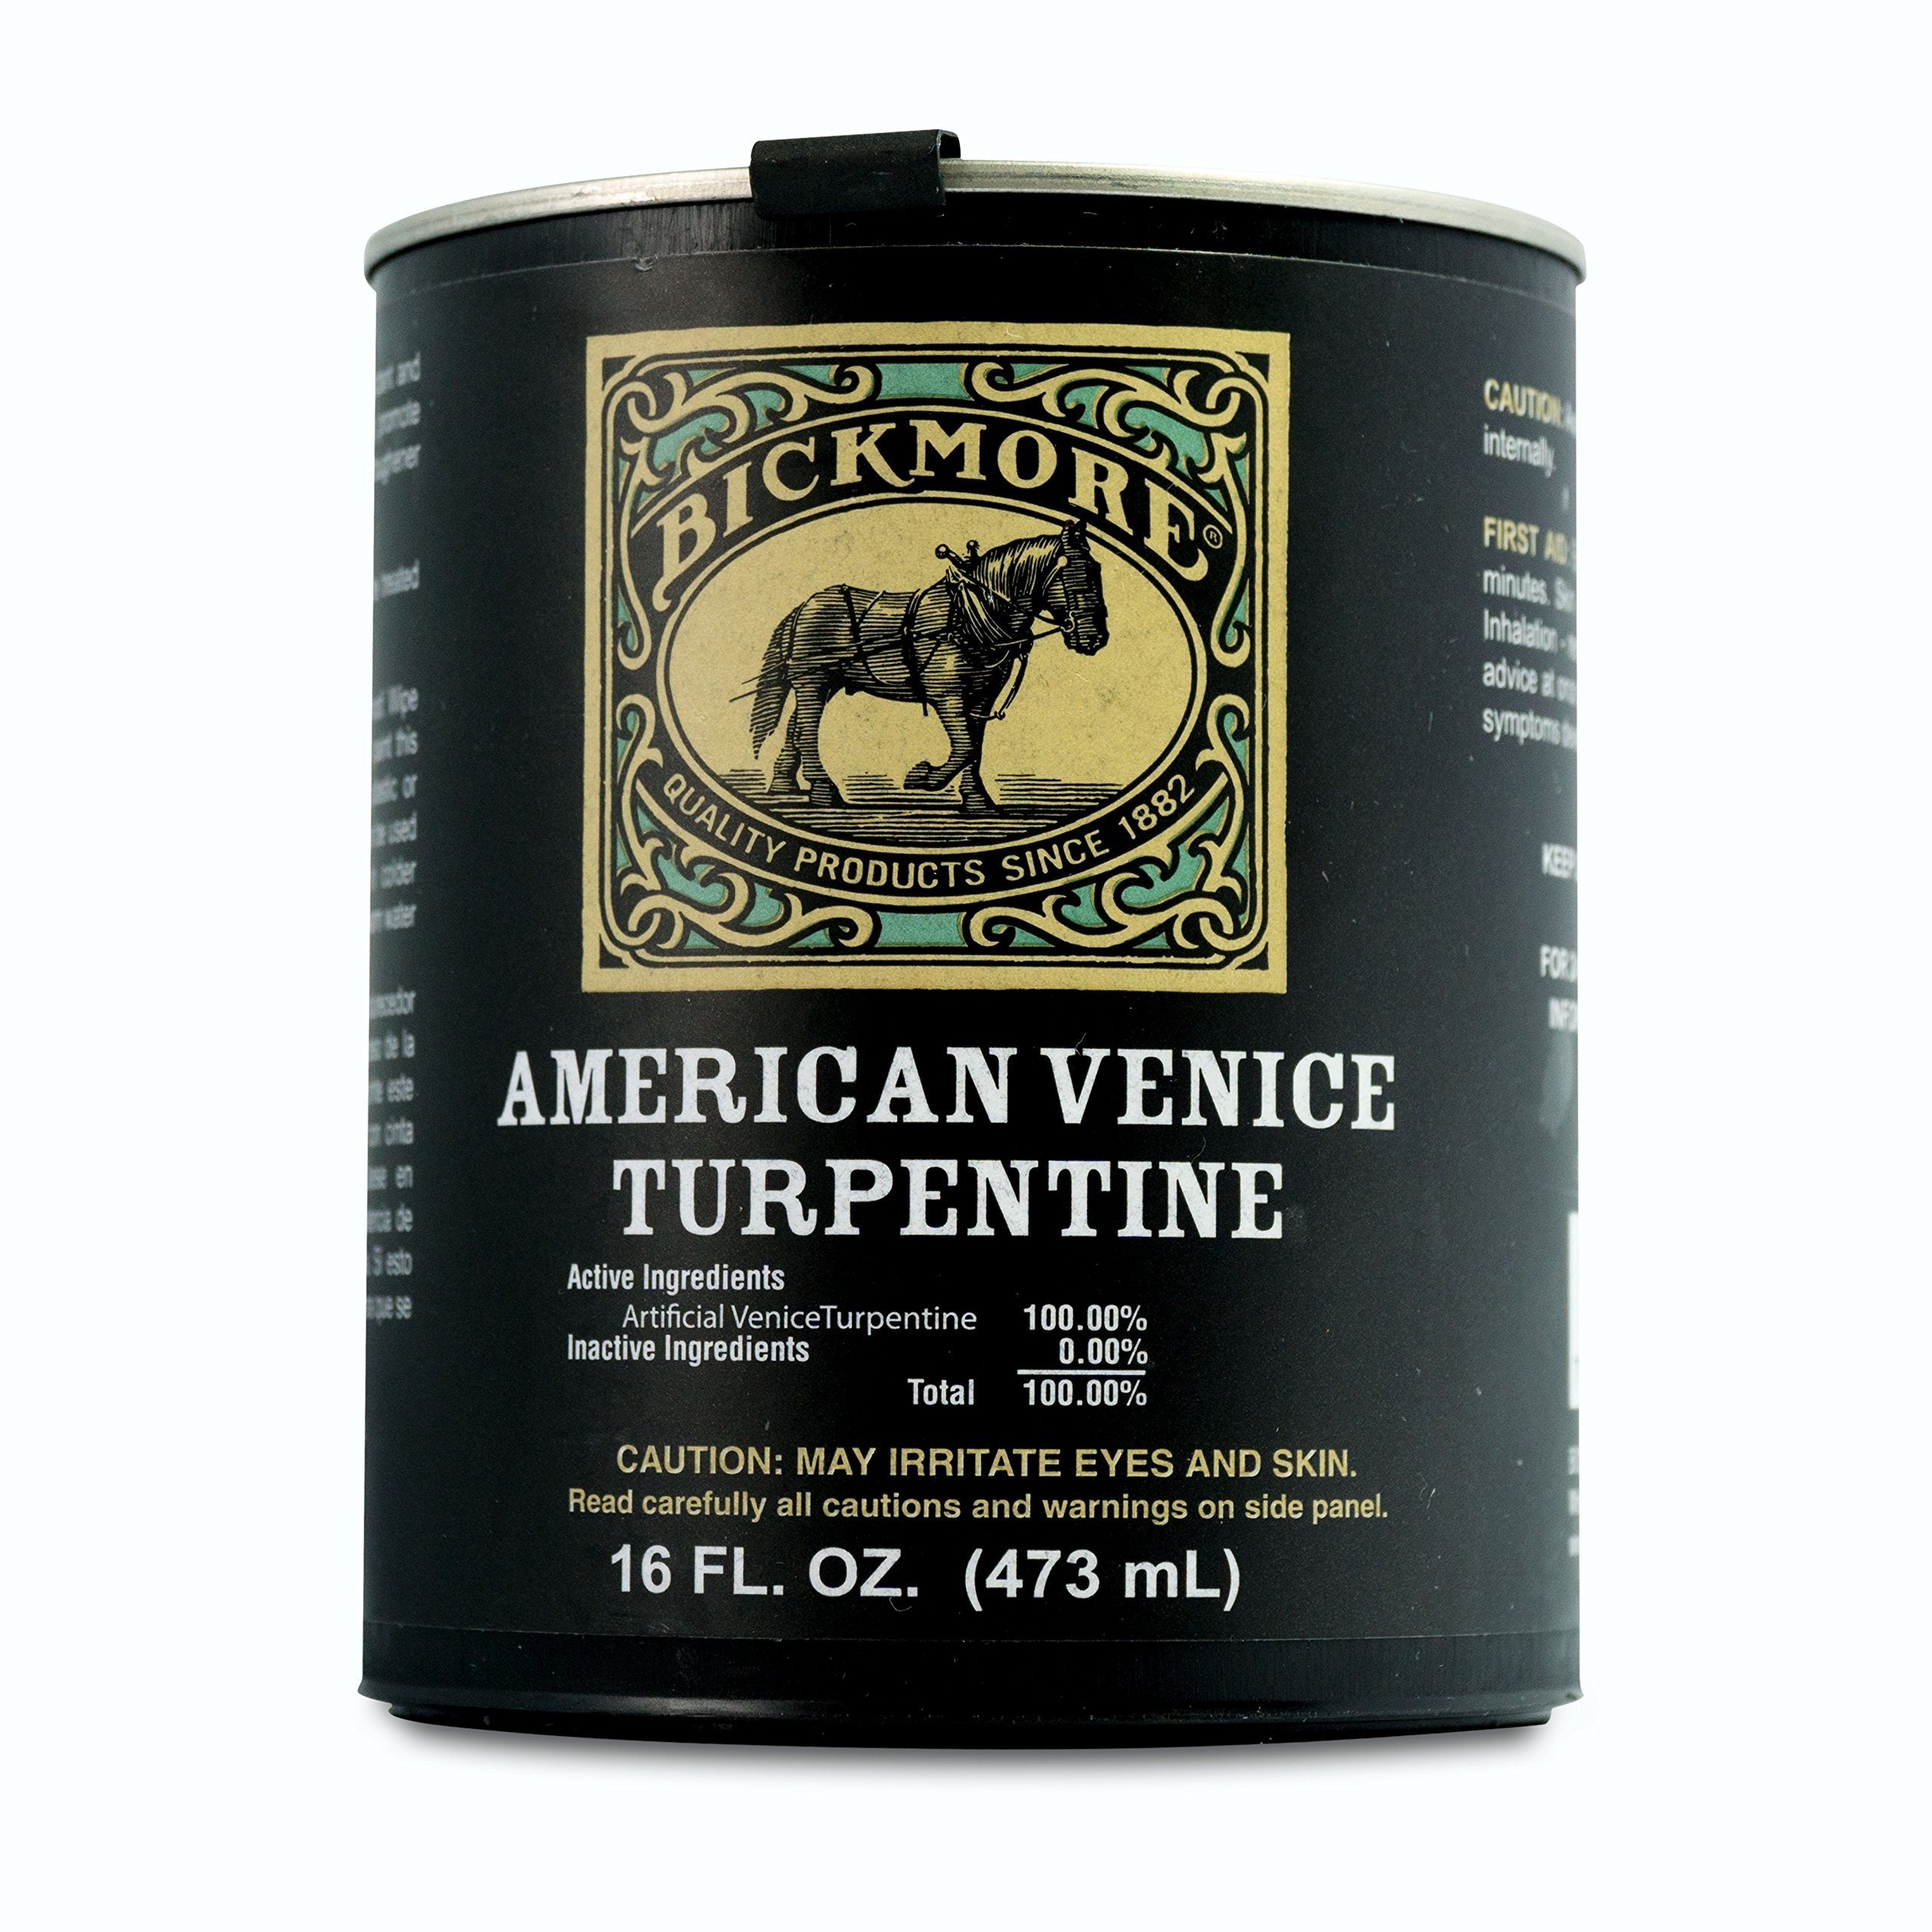 Bickmore American Venice Turpentine Pint for Horses - Promores New Hoof Growth and Prevents Quarter Cracks and Split Hooves by Bickmore